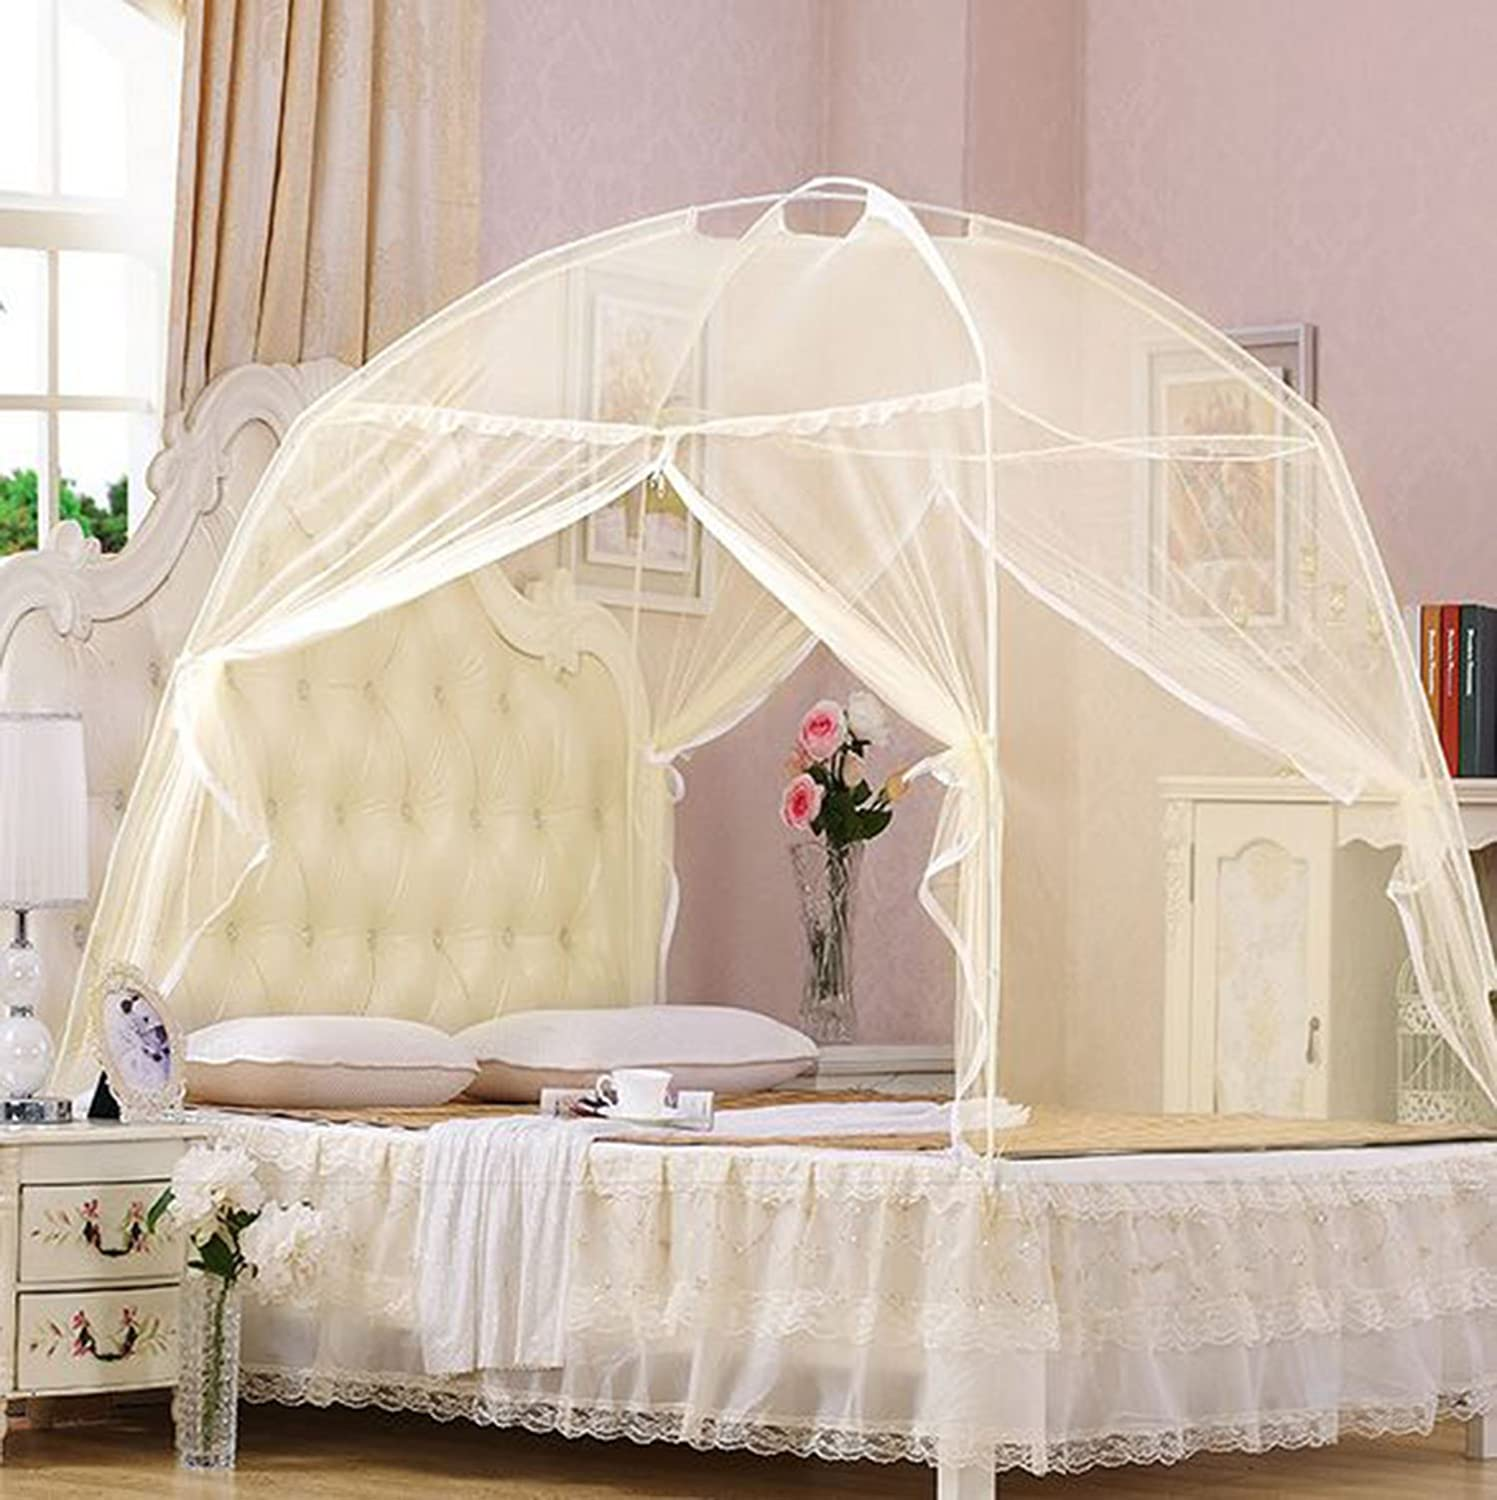 White, 110*200*125 Bow Mongolia Mosquito Net for Double Single Bed Netting Curtains Canopy Fly Screen Bed Frame Draperies